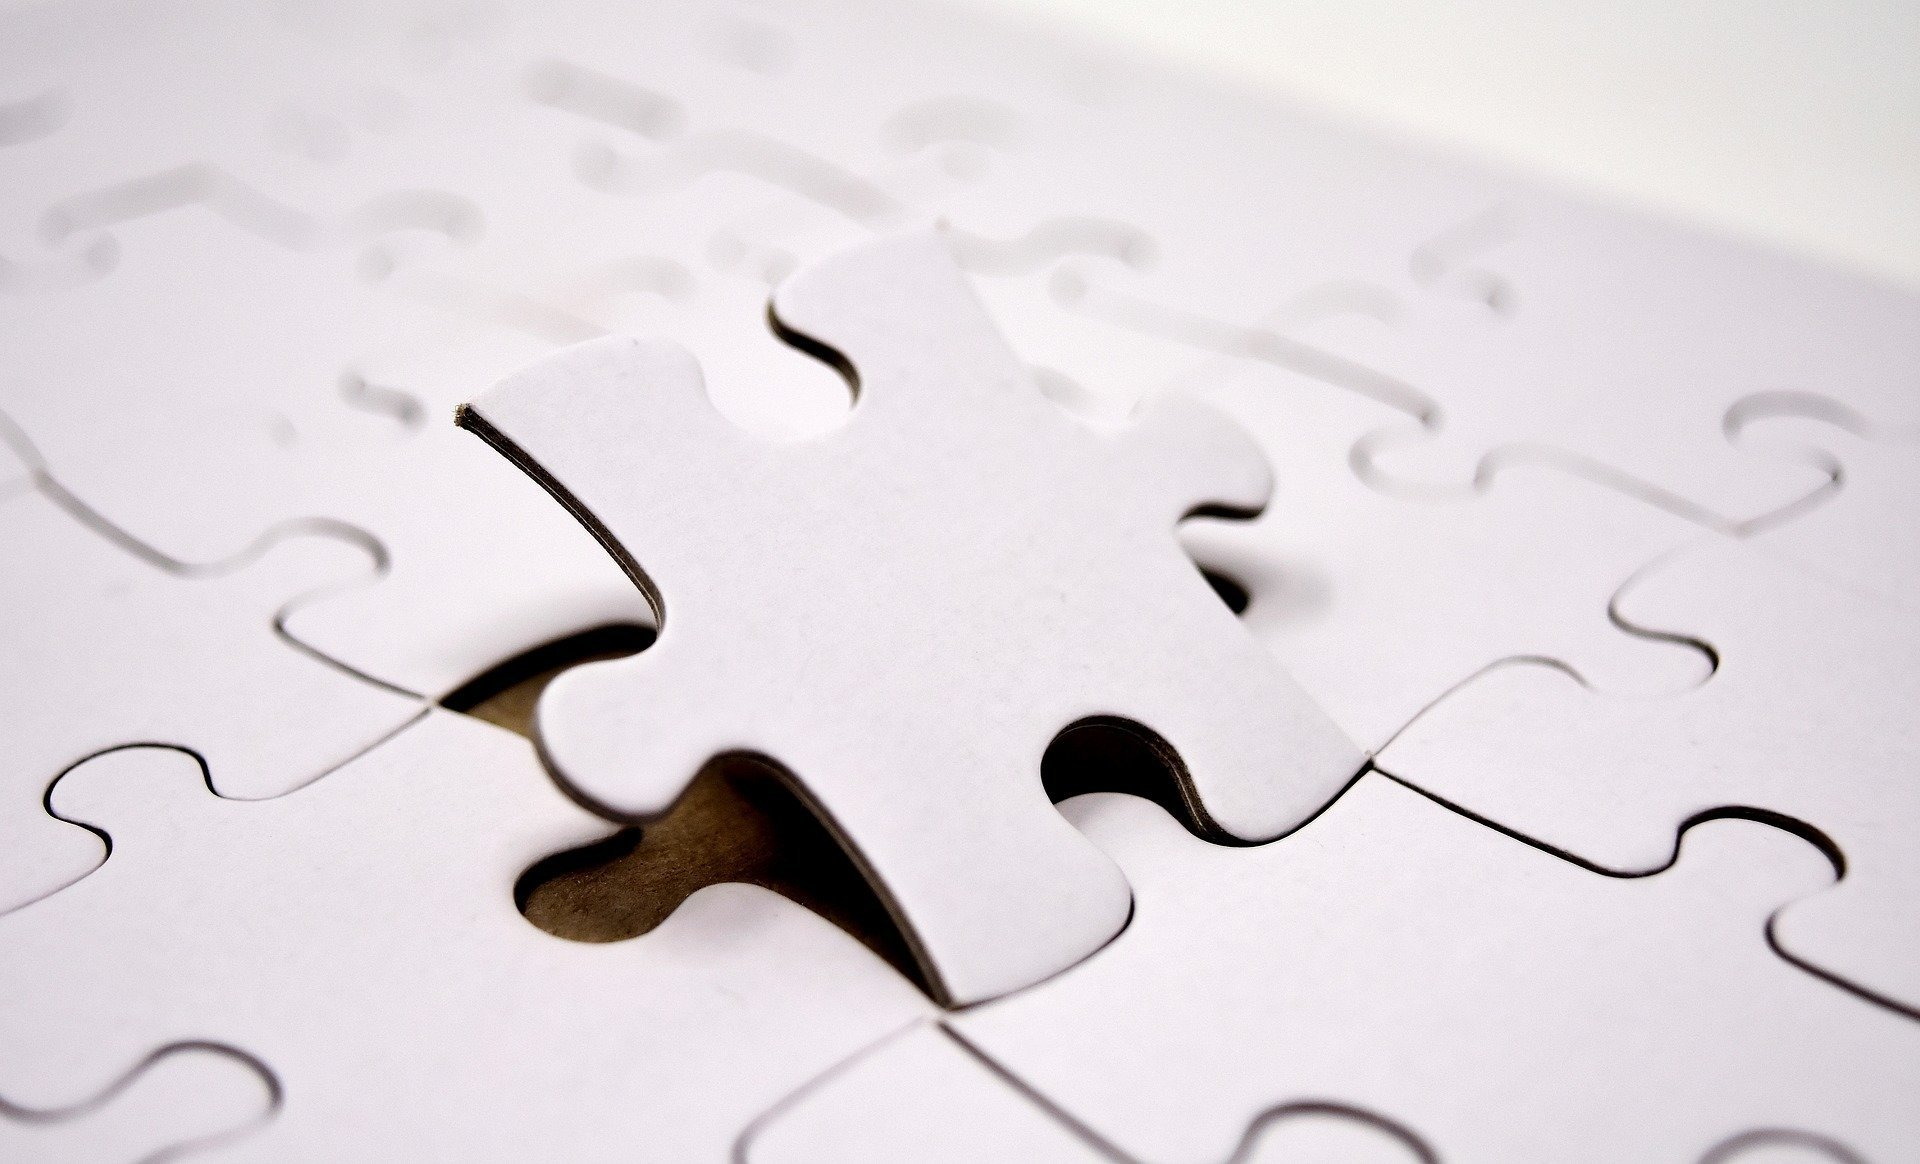 What's the missing piece of your jigsaw